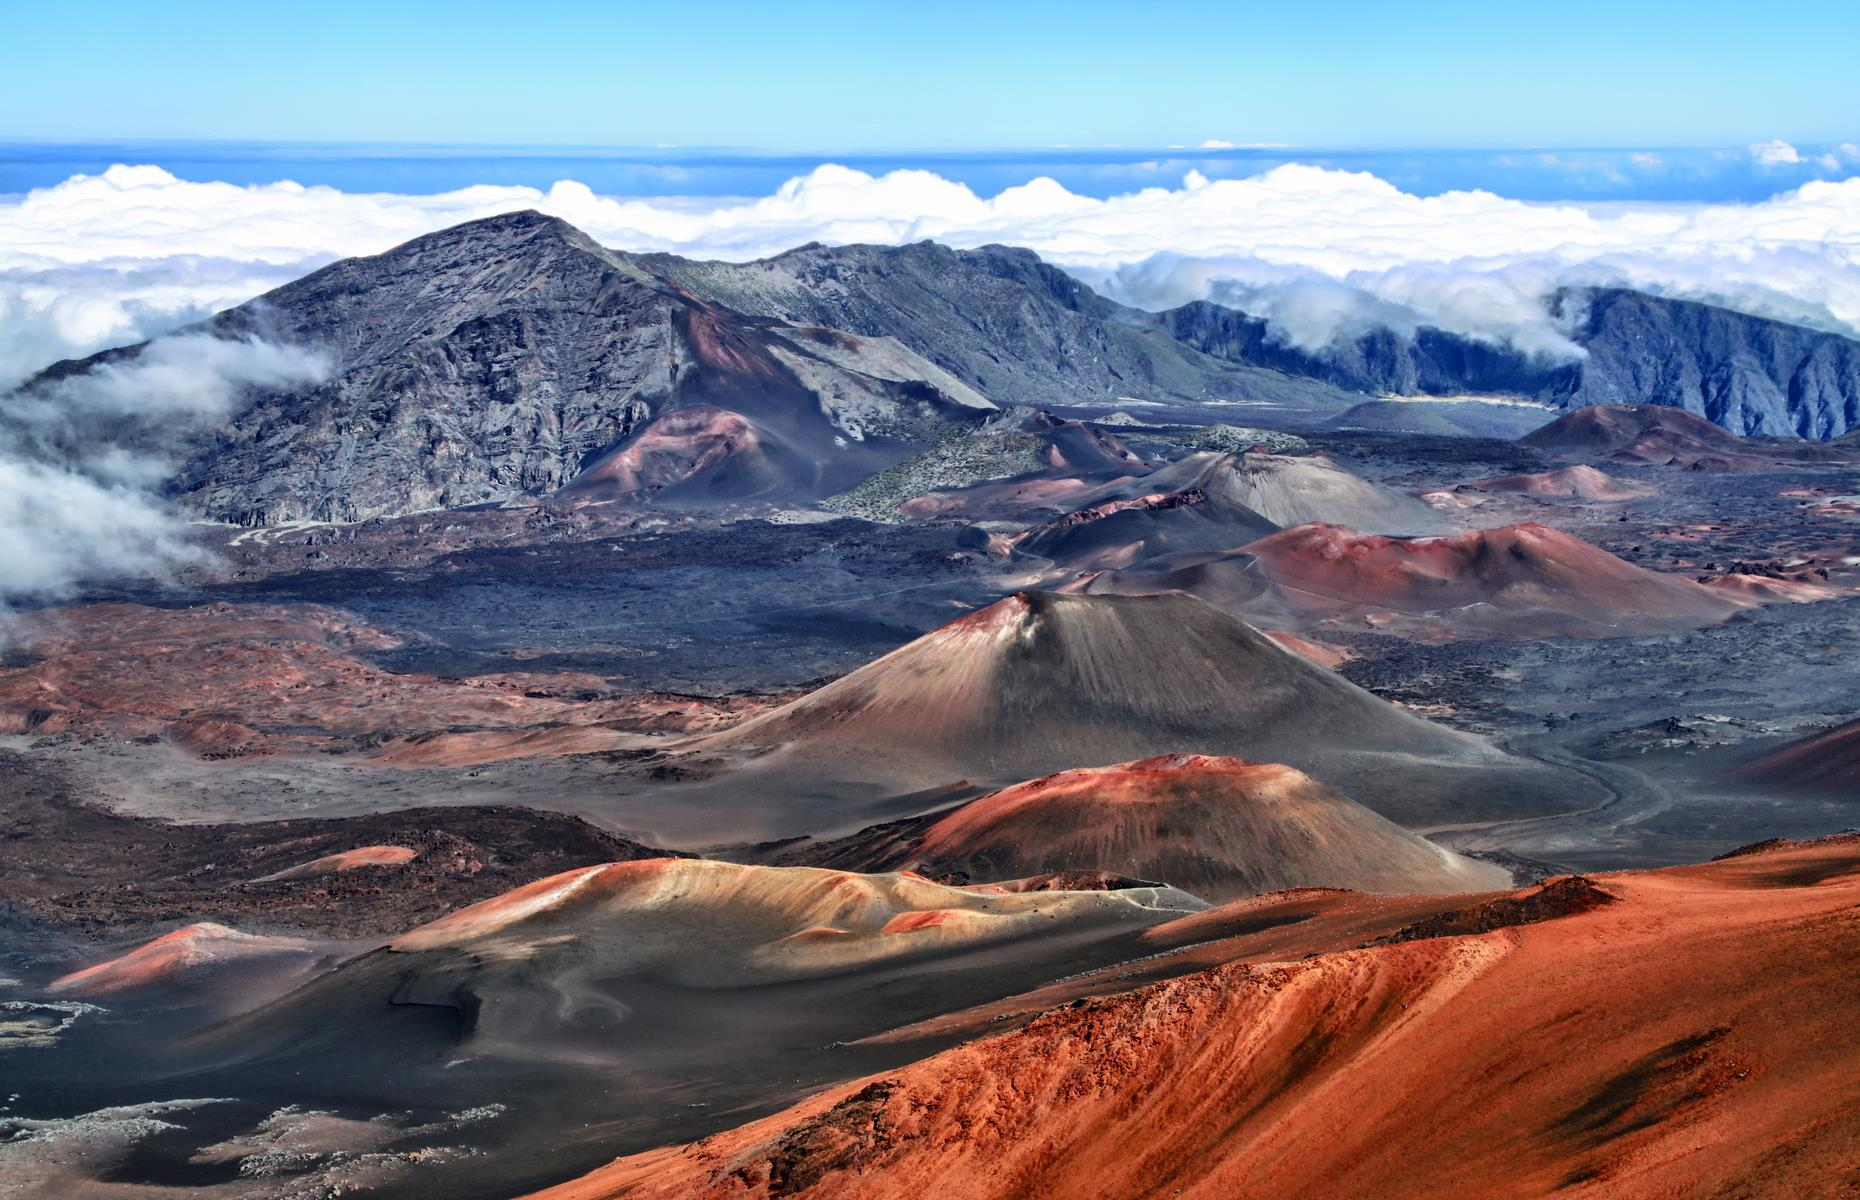 """Slide 25 of 41: This is about as close to the stars as you're likely to get. Haleakalā, the name ofthe dormant volcano within the park'slimits, means """"House of the Sun"""" in Hawaiian, and the locationis famed for its epic views of the sunrise. Nosing right up to the clouds, the Summit Area is the most otherworldly swathe of all: it's all rich cinder desert scattered with native shrubs, plus brighter than bright stars winking by night."""